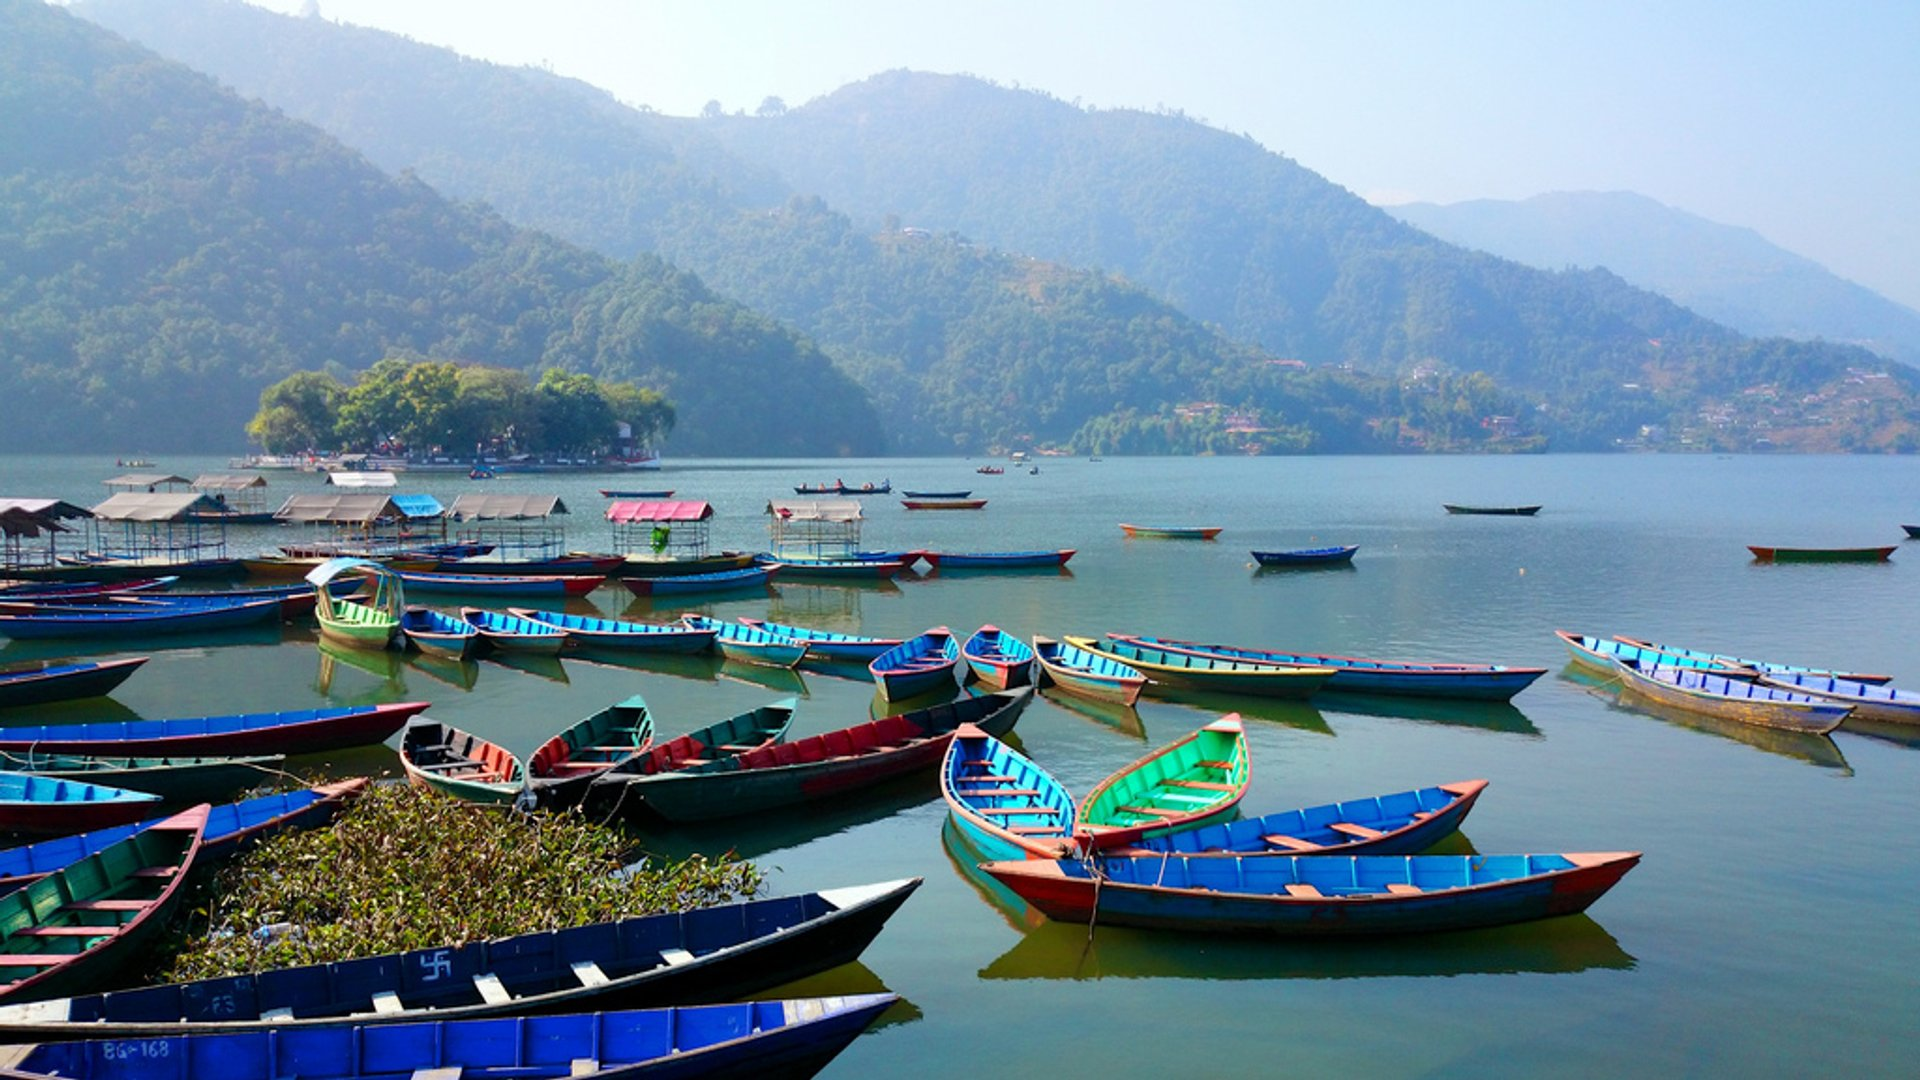 Best time for Boating with a View in Nepal 2020